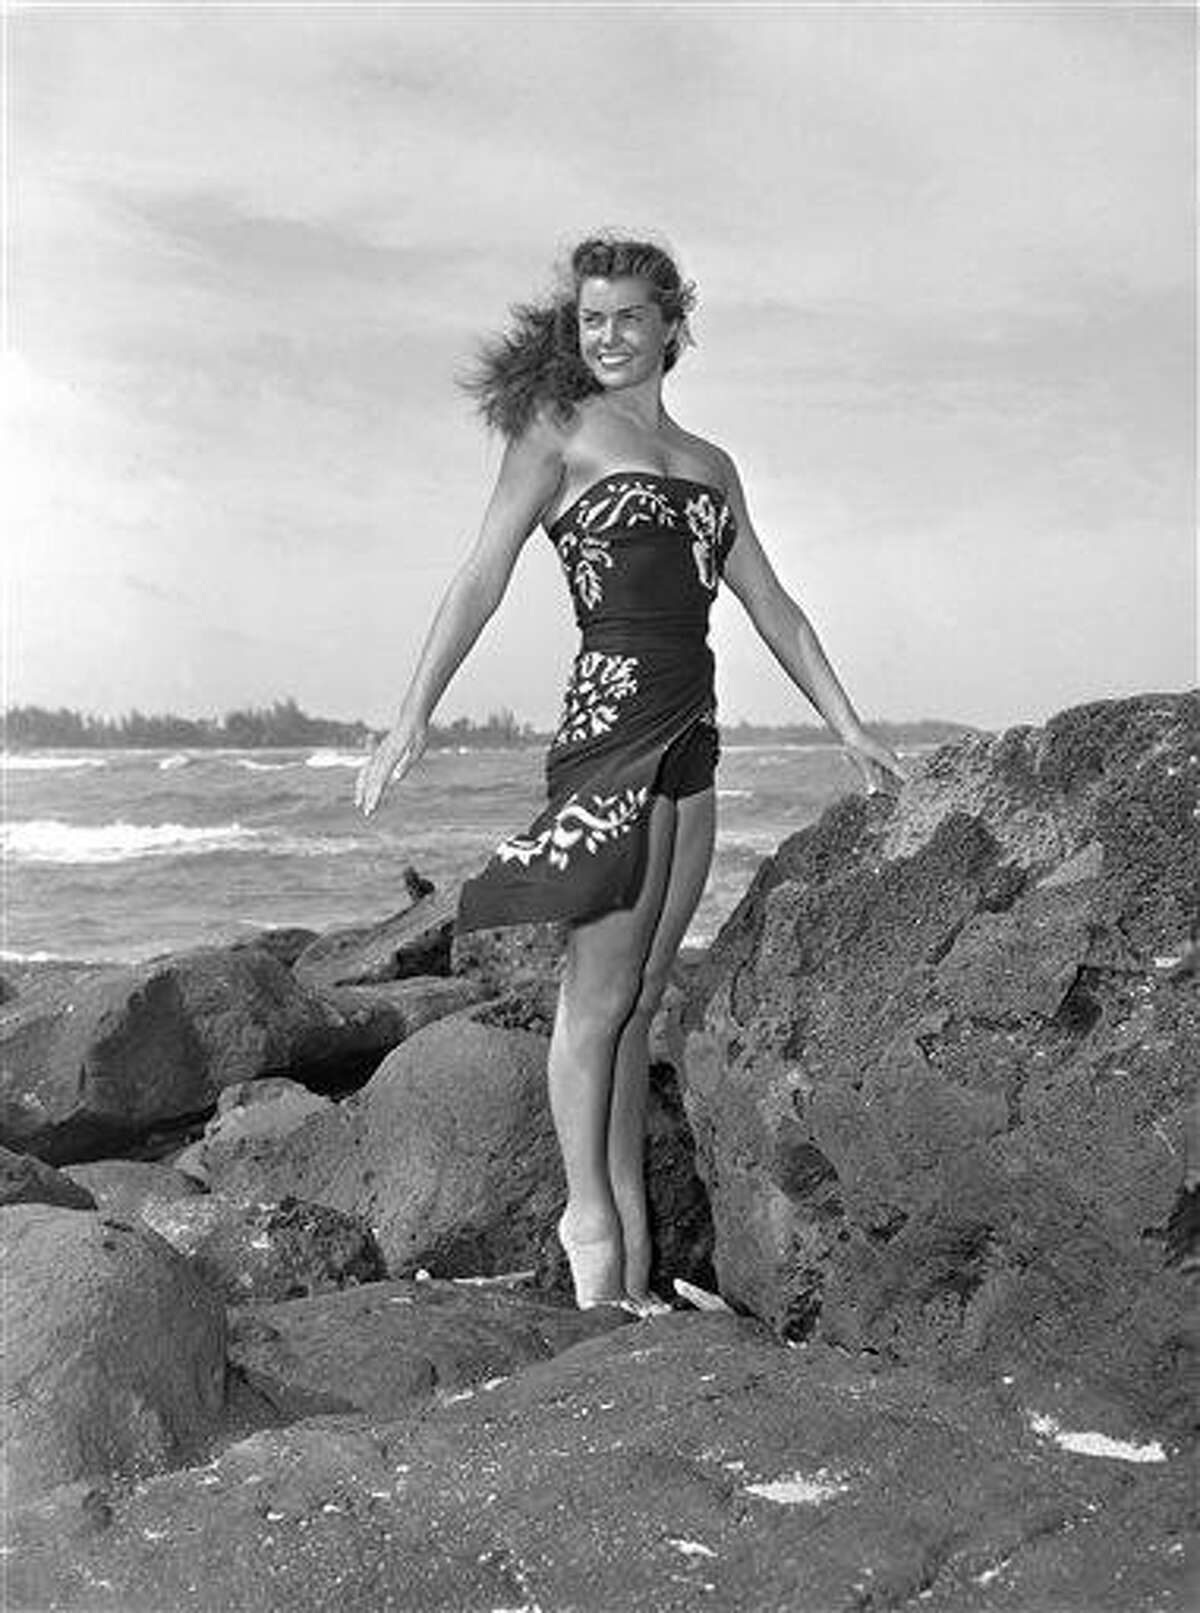 FILE - This May 1950 file publicity photo originally released by Metro-Goldwyn-Mayer shows Esther Williams on location for the film